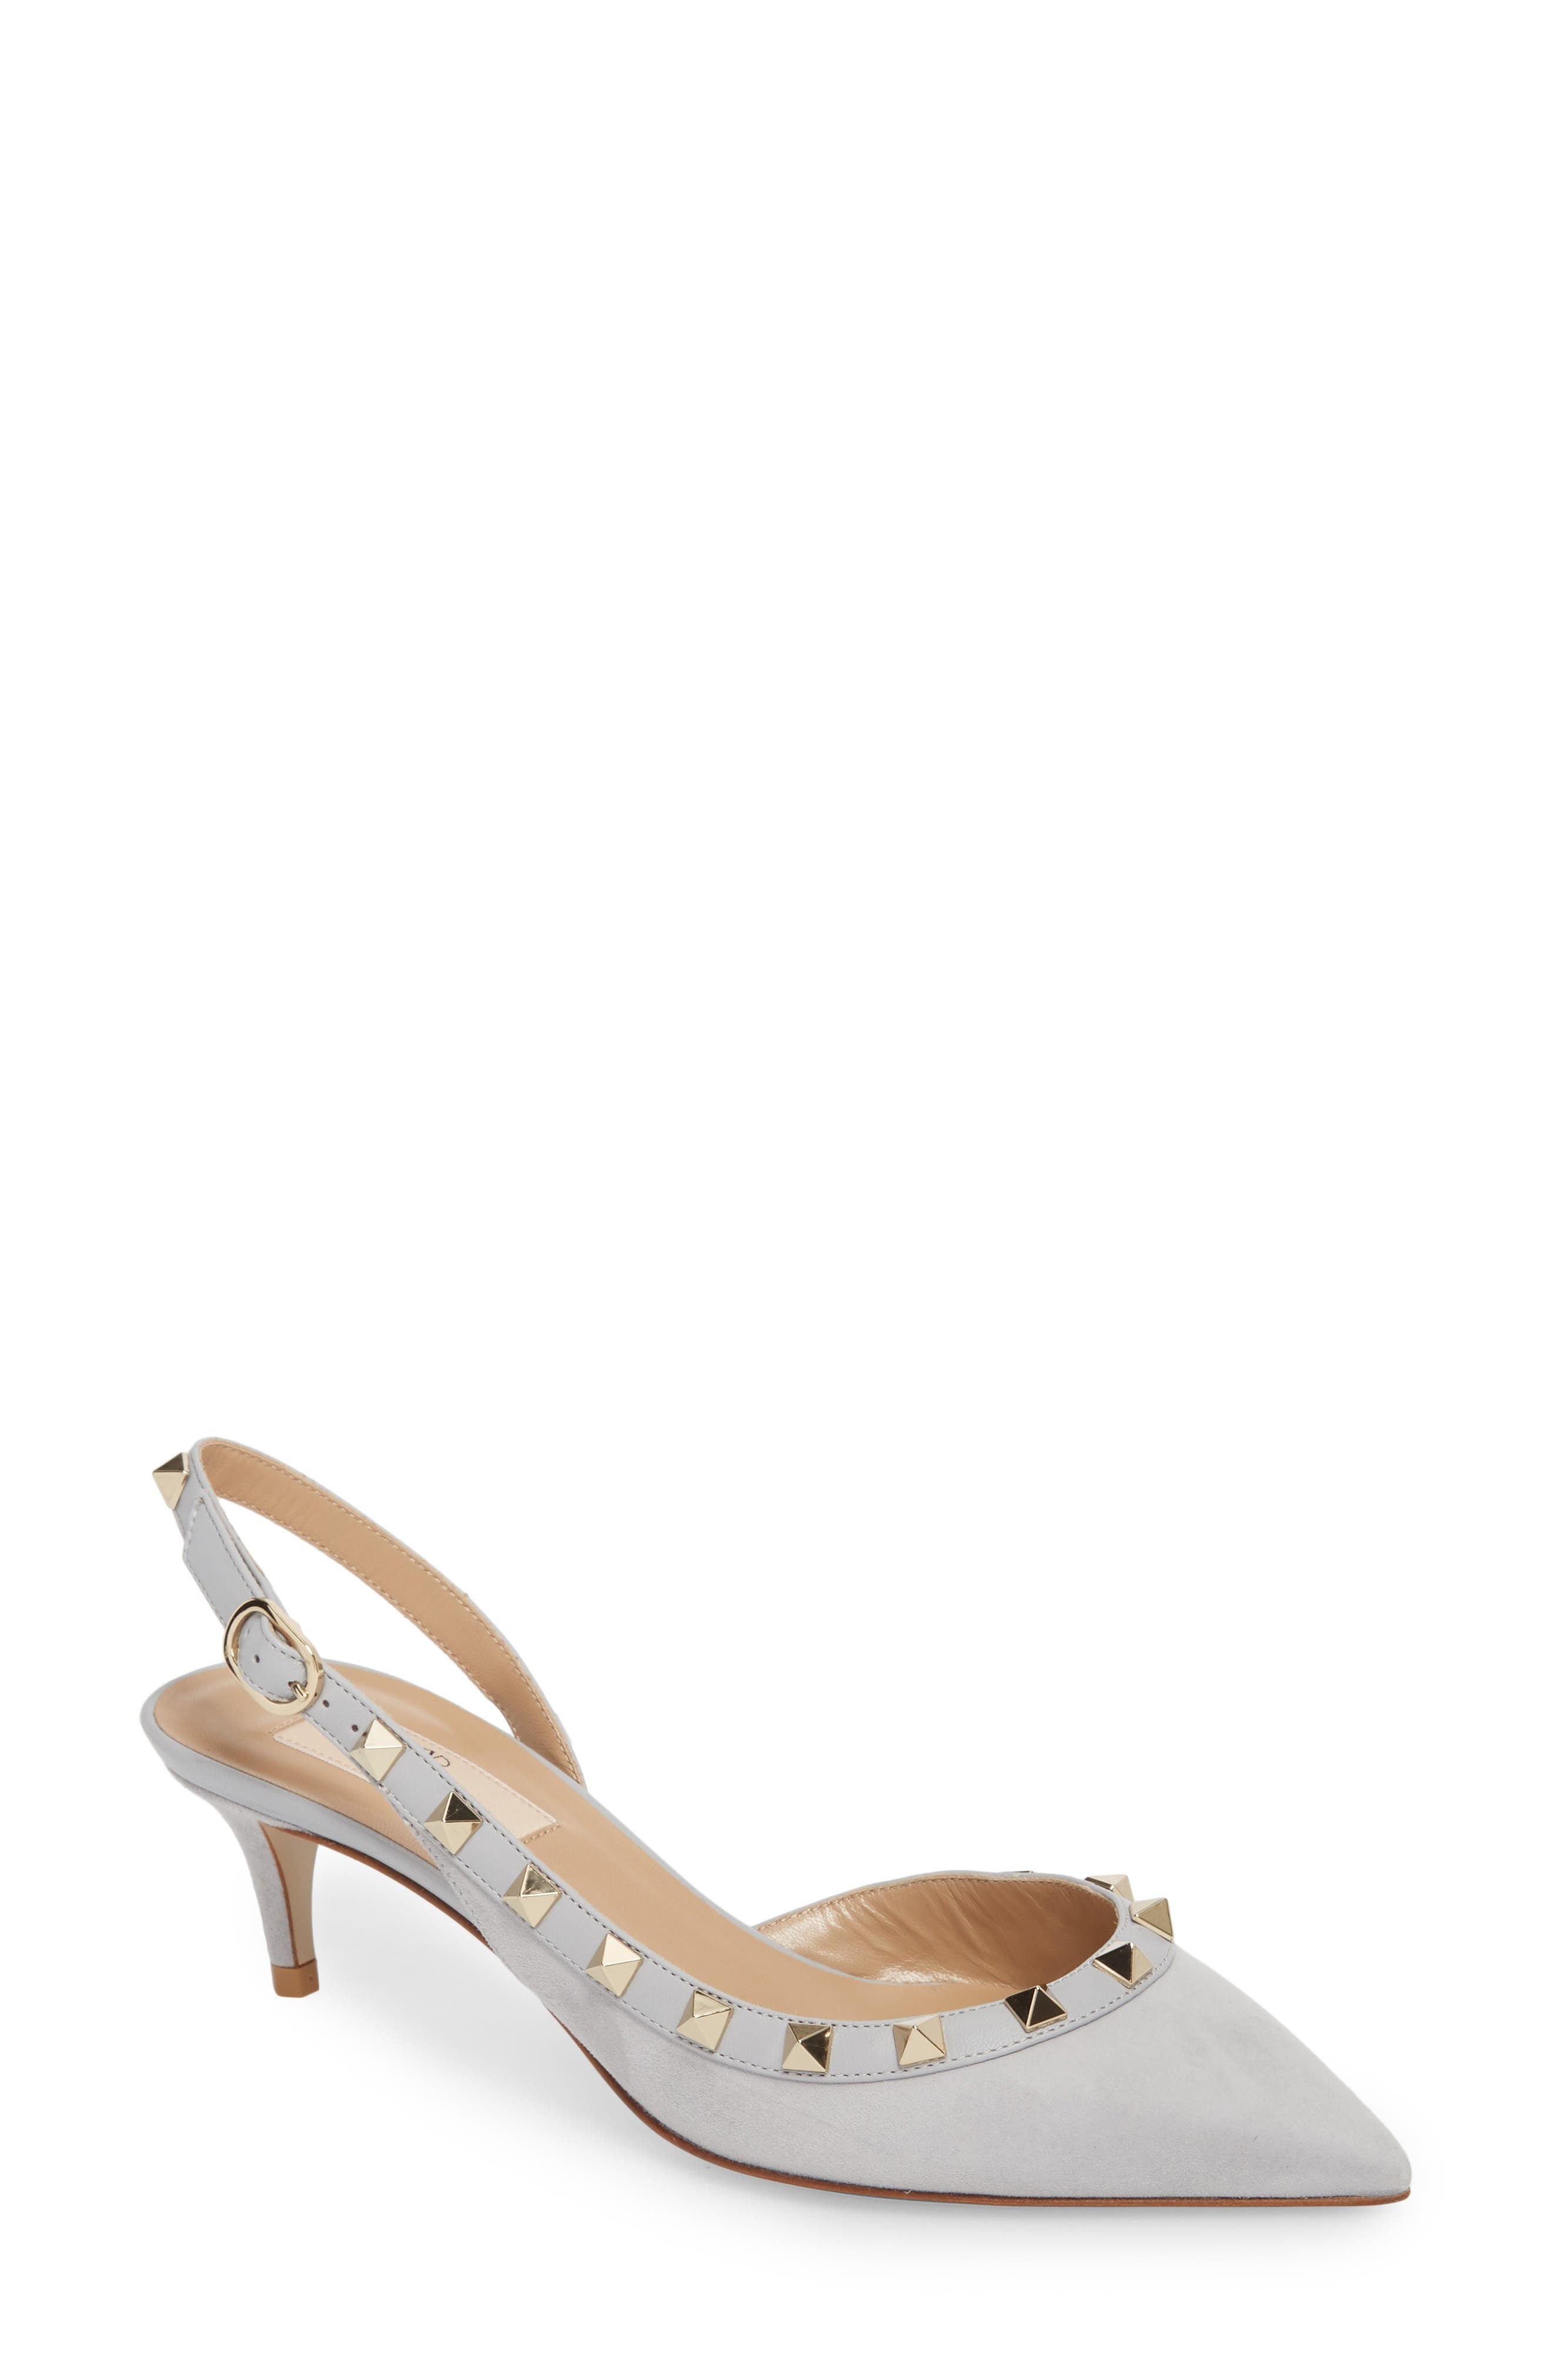 Rockstud Slingback Pump,                         Main,                         color, Pastel Grey Suede